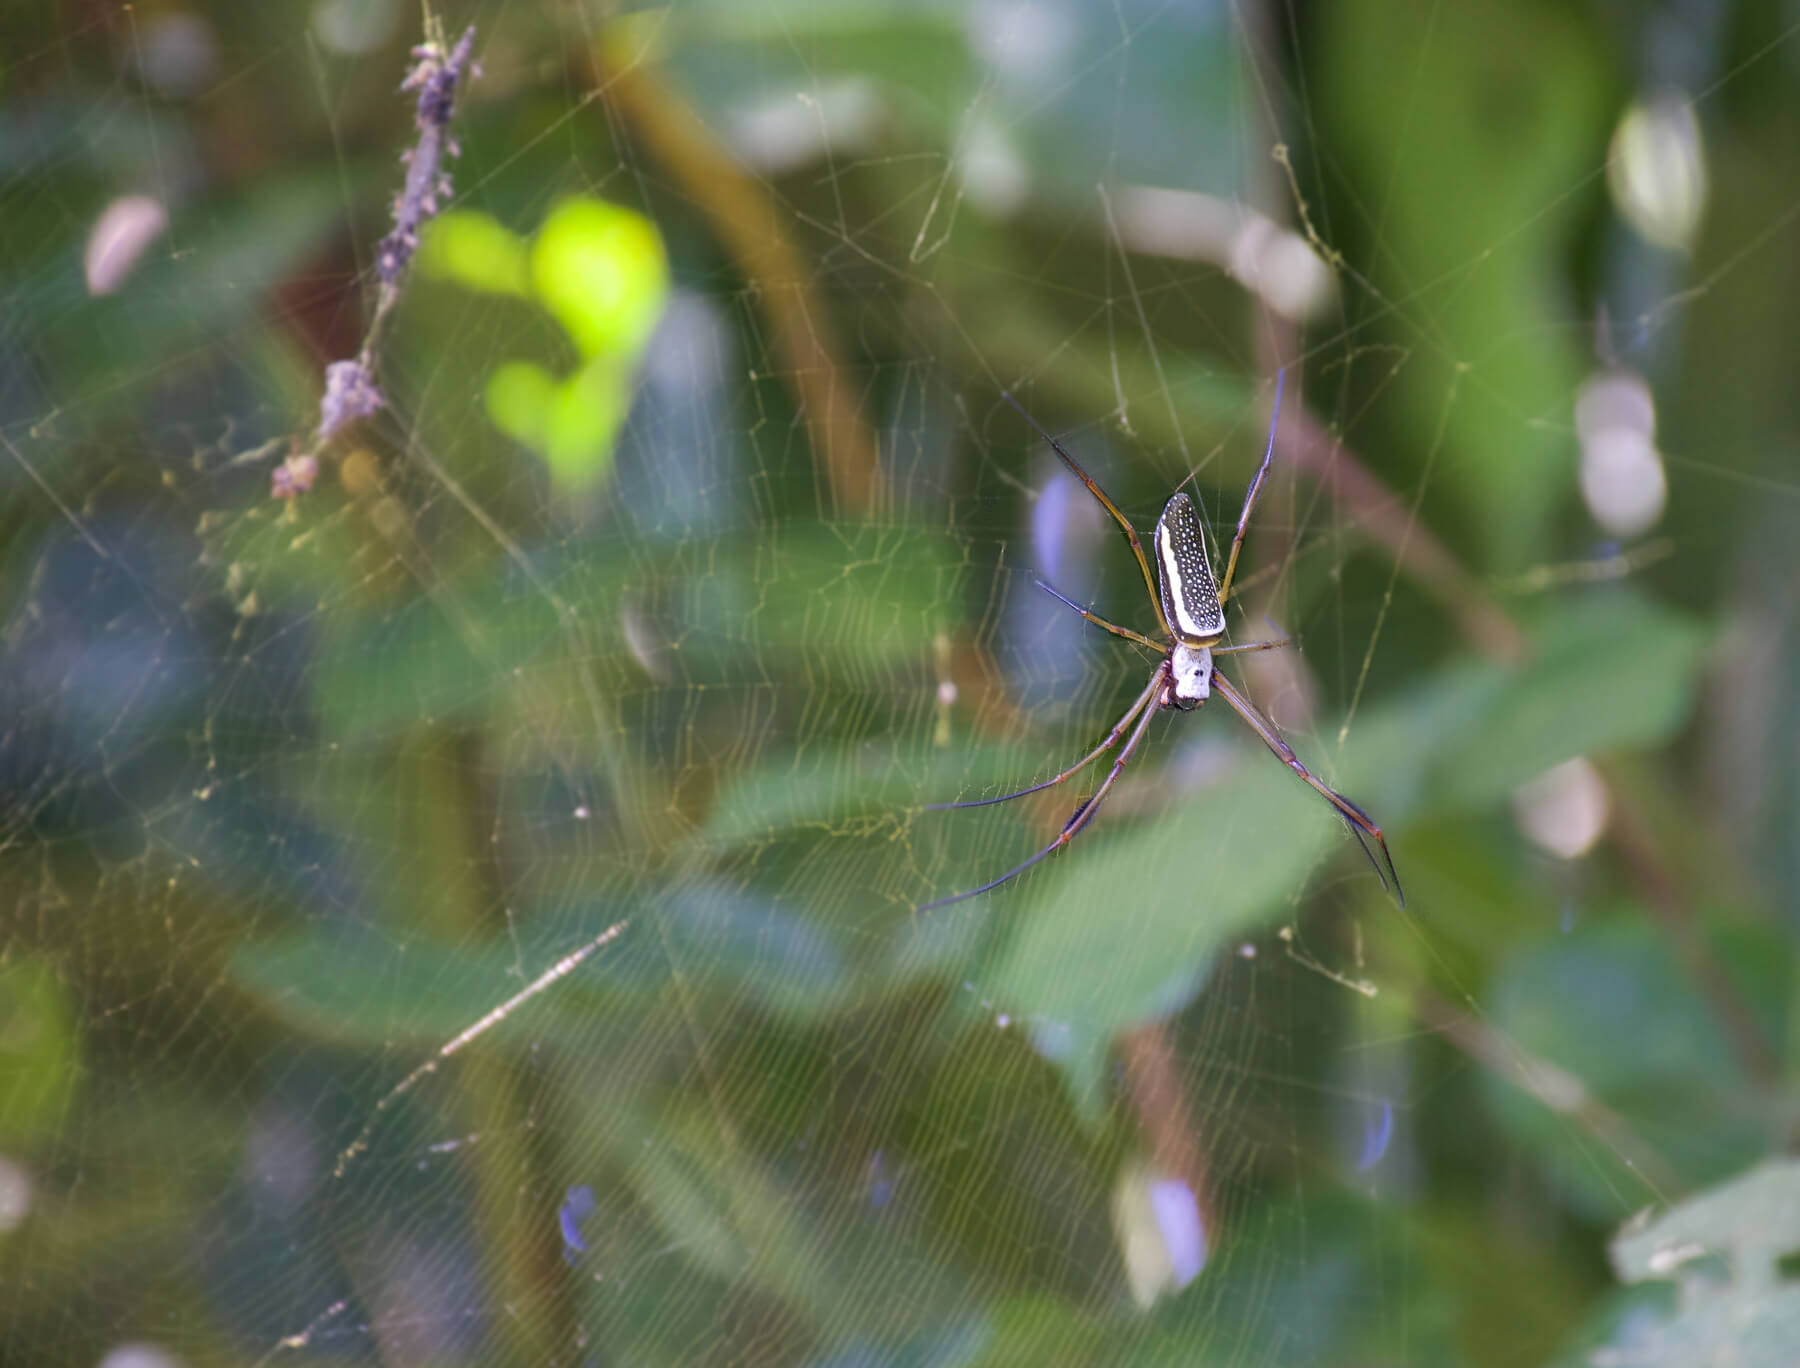 """A """"Golden Silk"""" spider on its web during with a green bush behind it"""